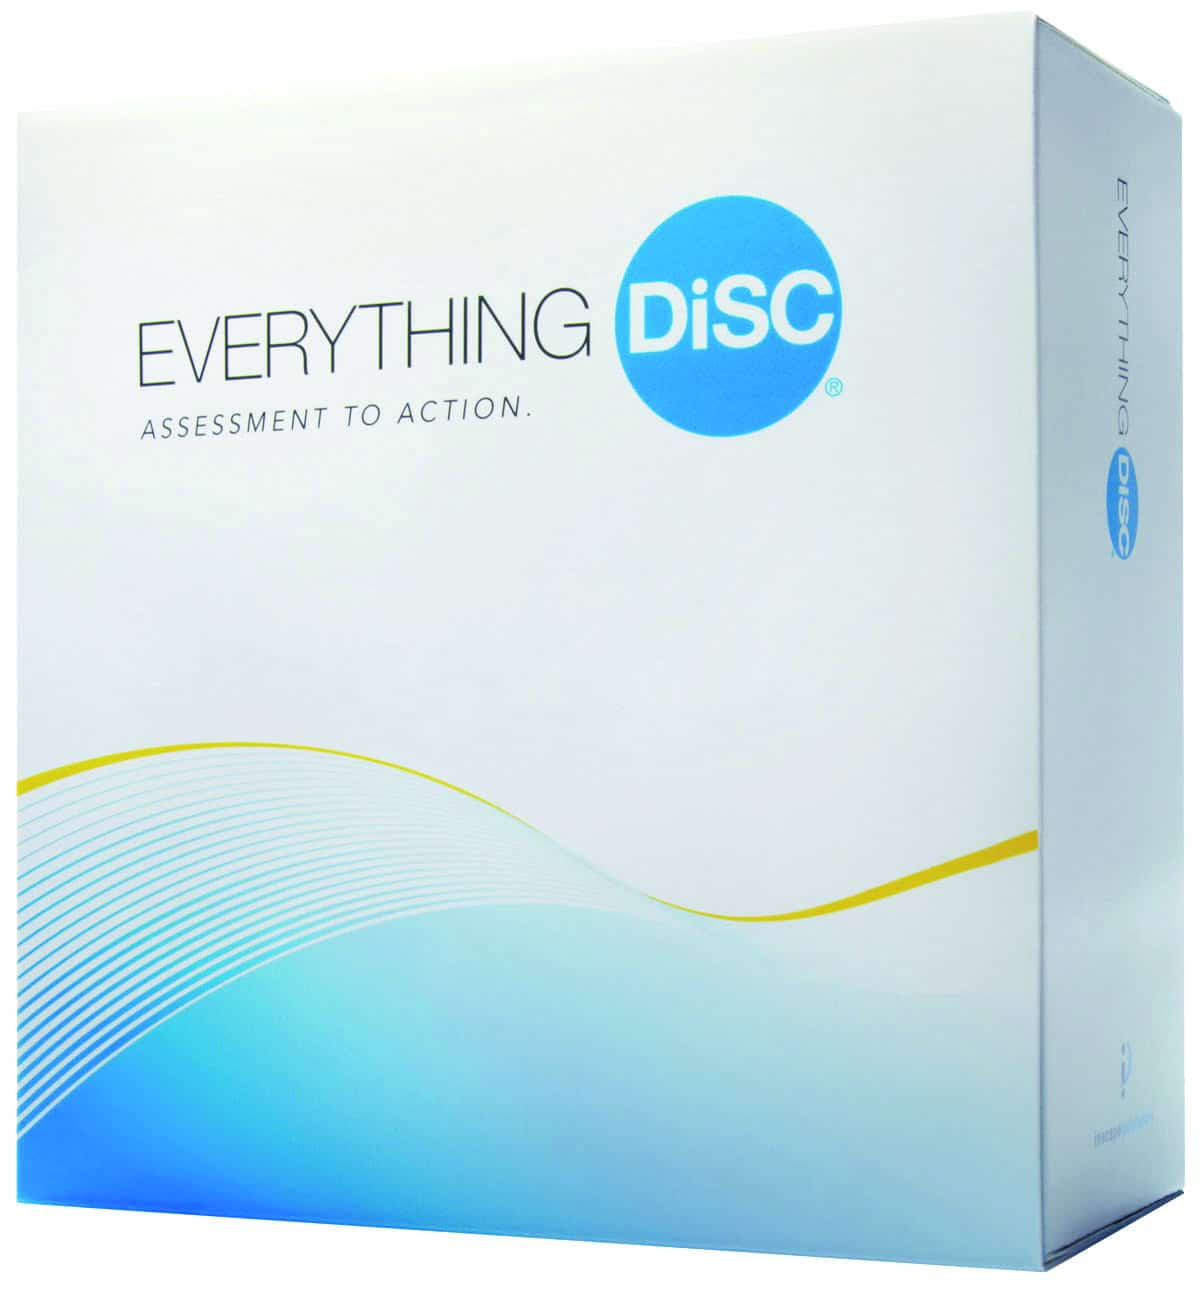 https://disg-training.de/wp-content/uploads/2019/04/Everything-DiSC-Facilitation-Kit-Box-Hi-Res-Web.jpg